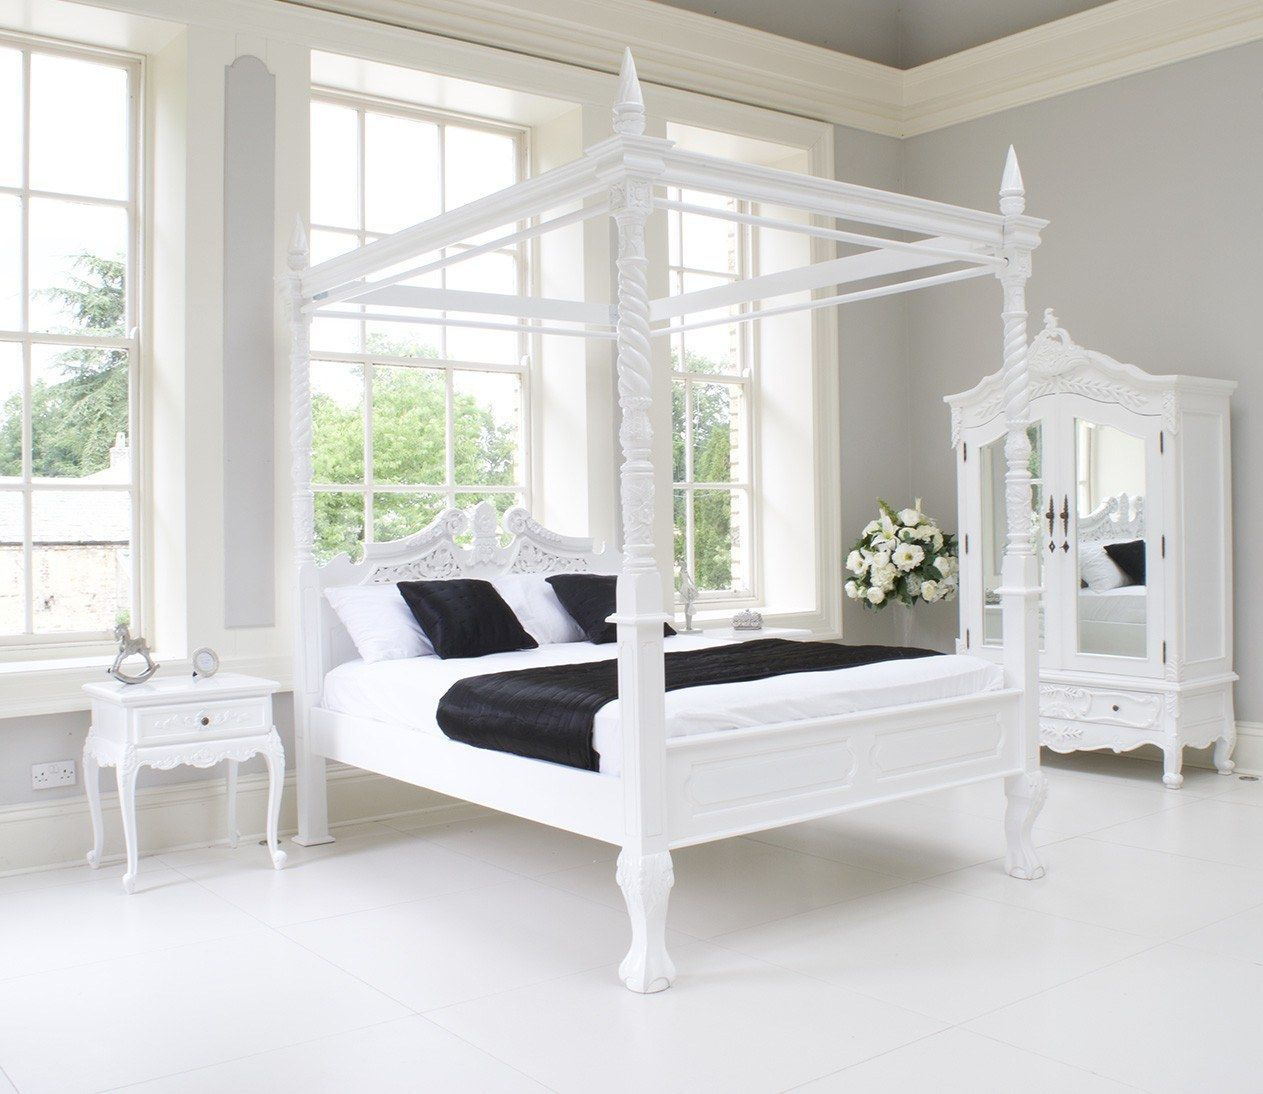 White Four Poster King Bed French Beds Four Poster Chateau Bed In White Ideas For The